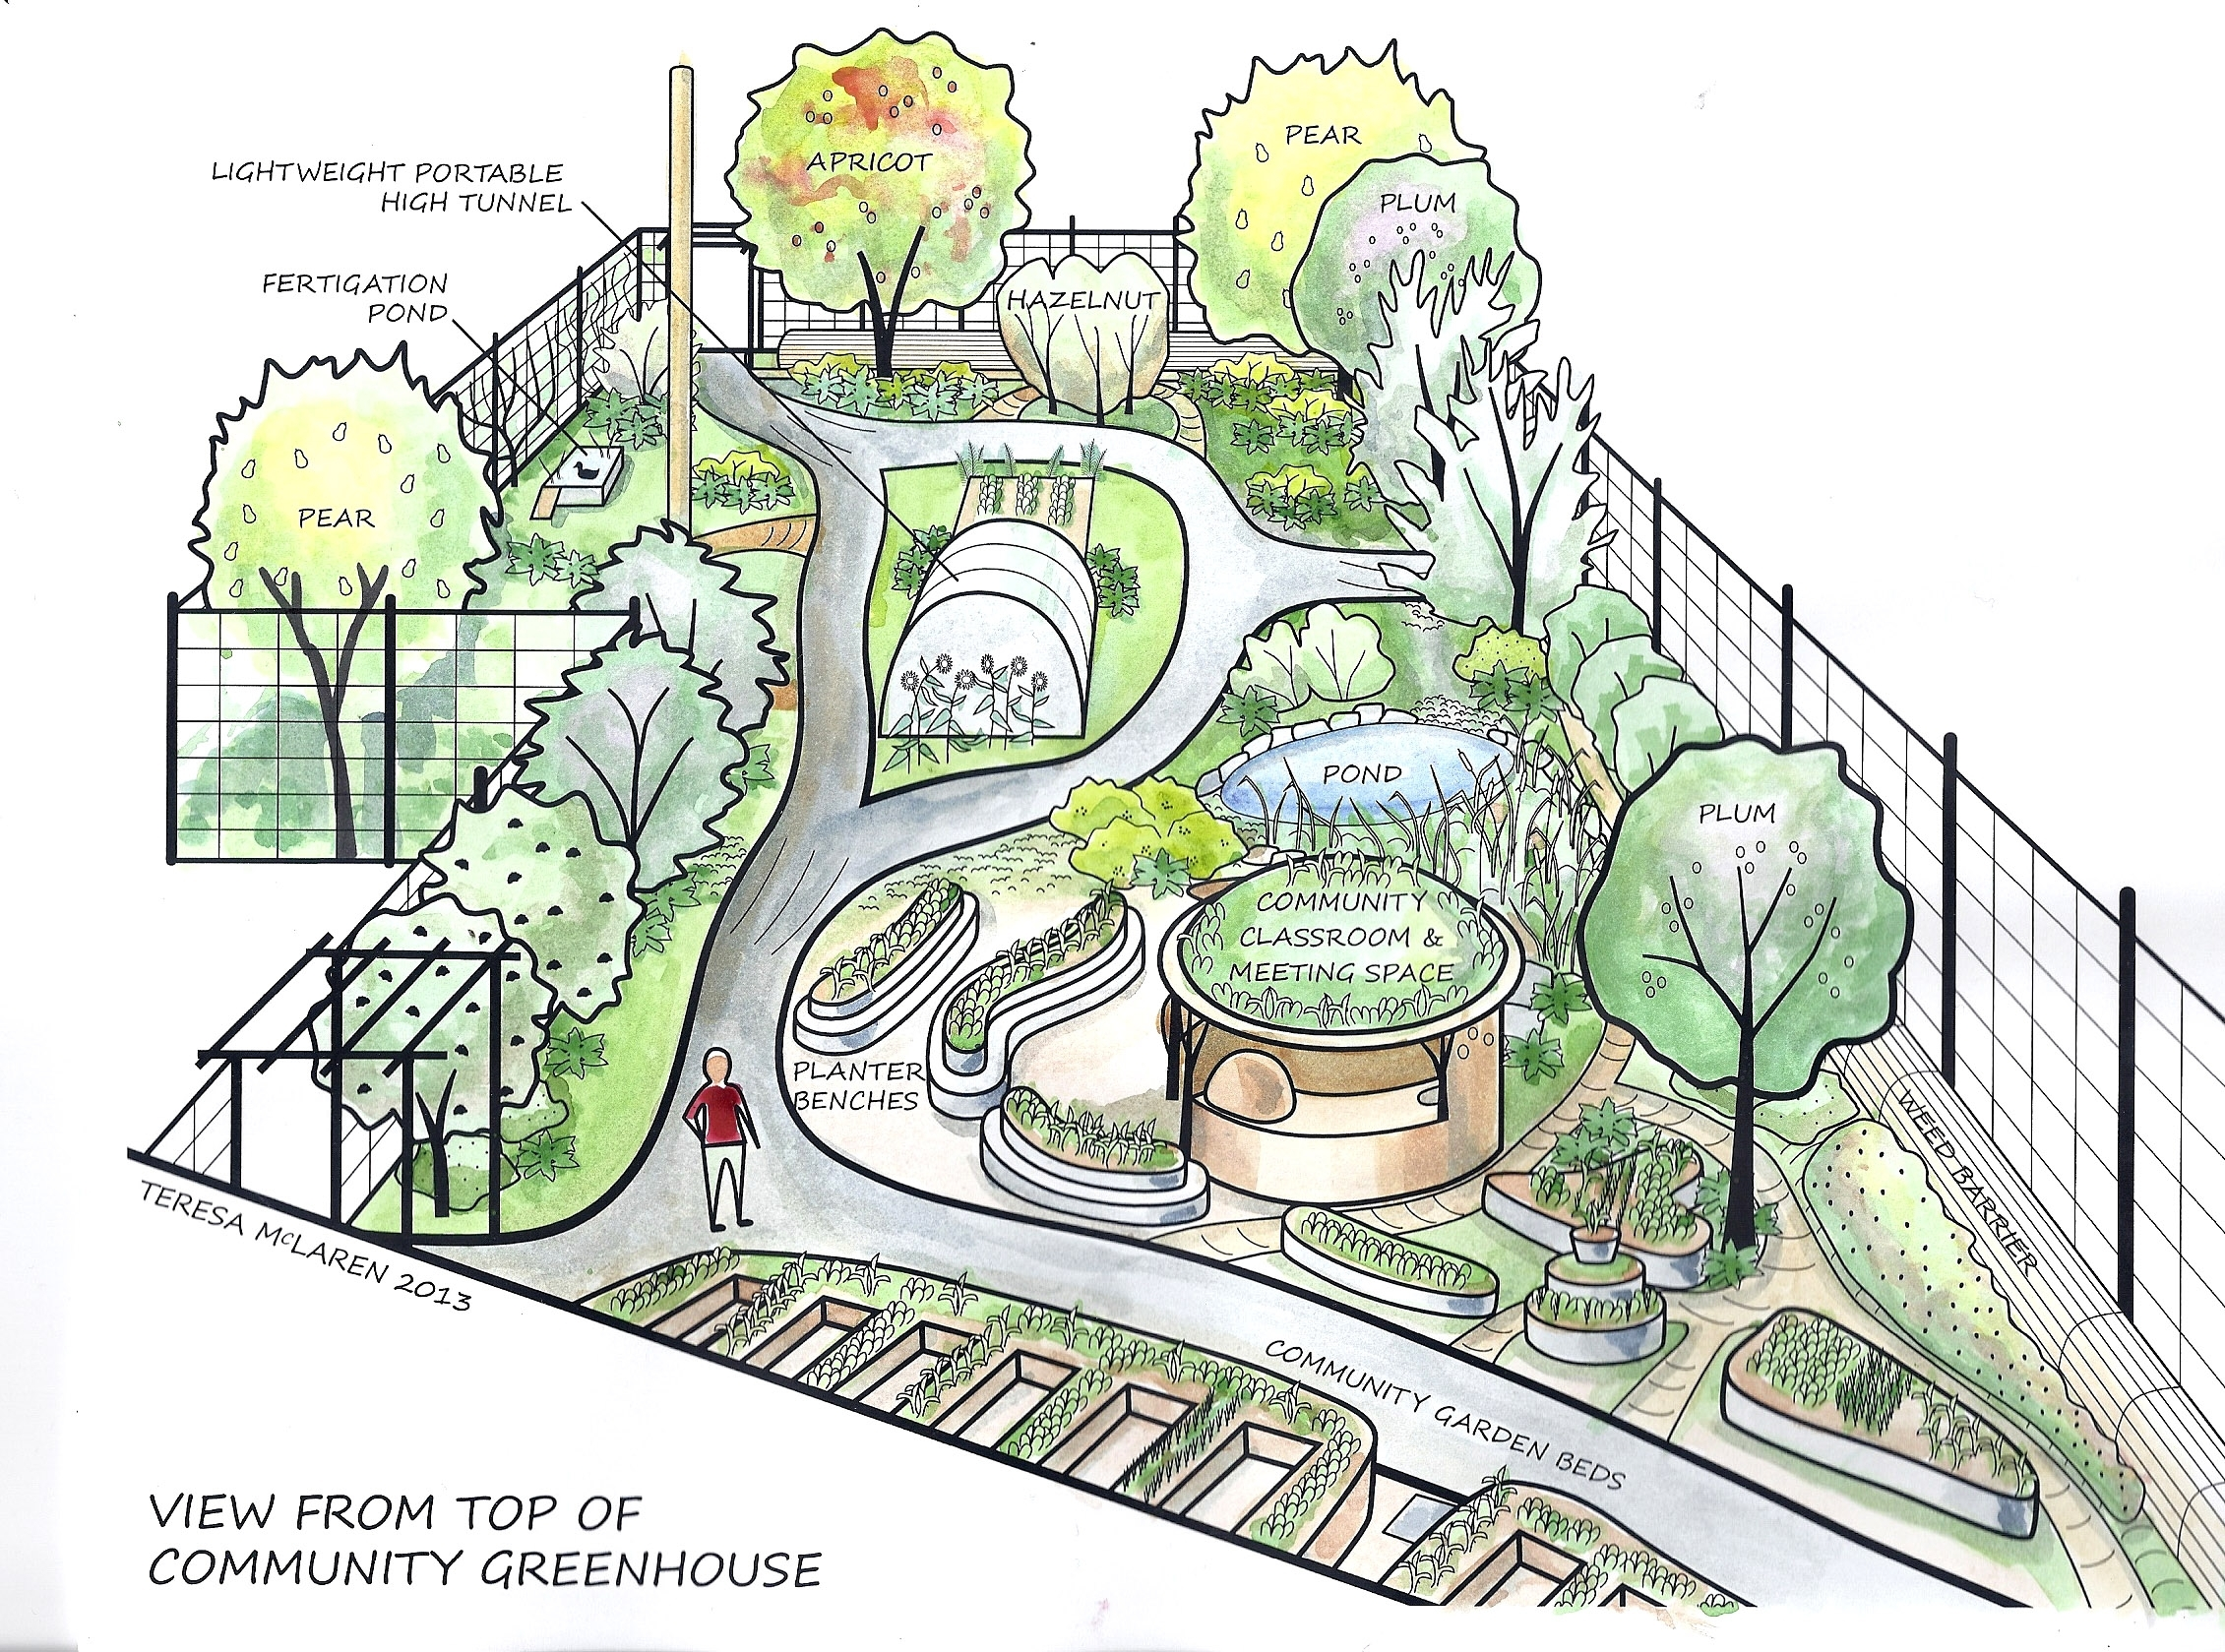 78 Best Permaculture - Designs Images On Pinterest inside Best Layout For Forest Garden Apartments Design Ideas